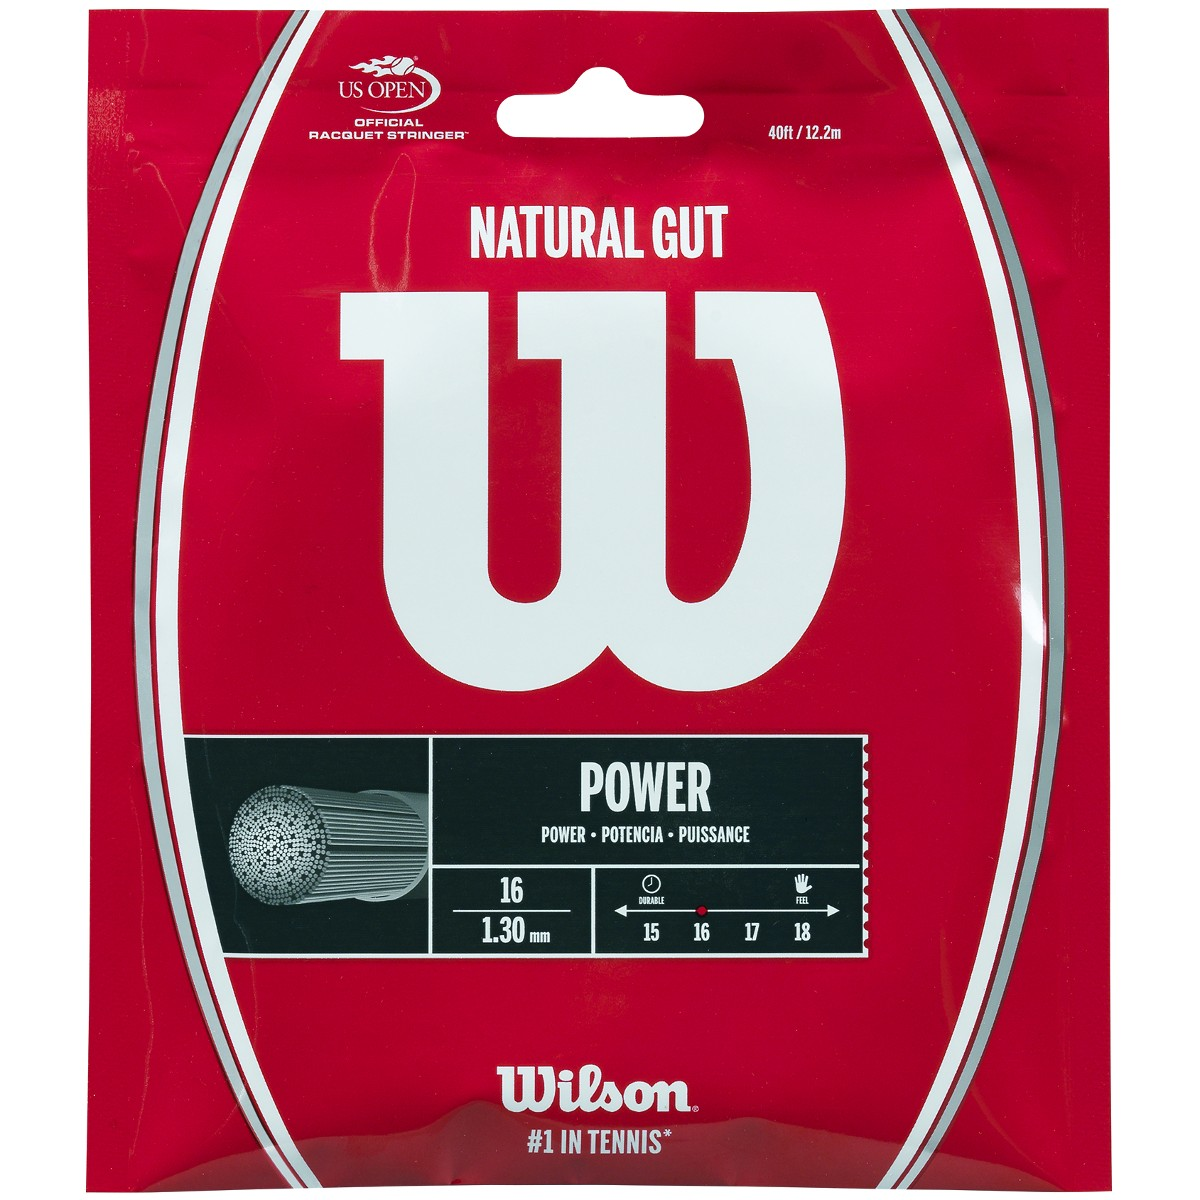 WILSON NATURAL GUT (12,2 METRES) STRING PACK